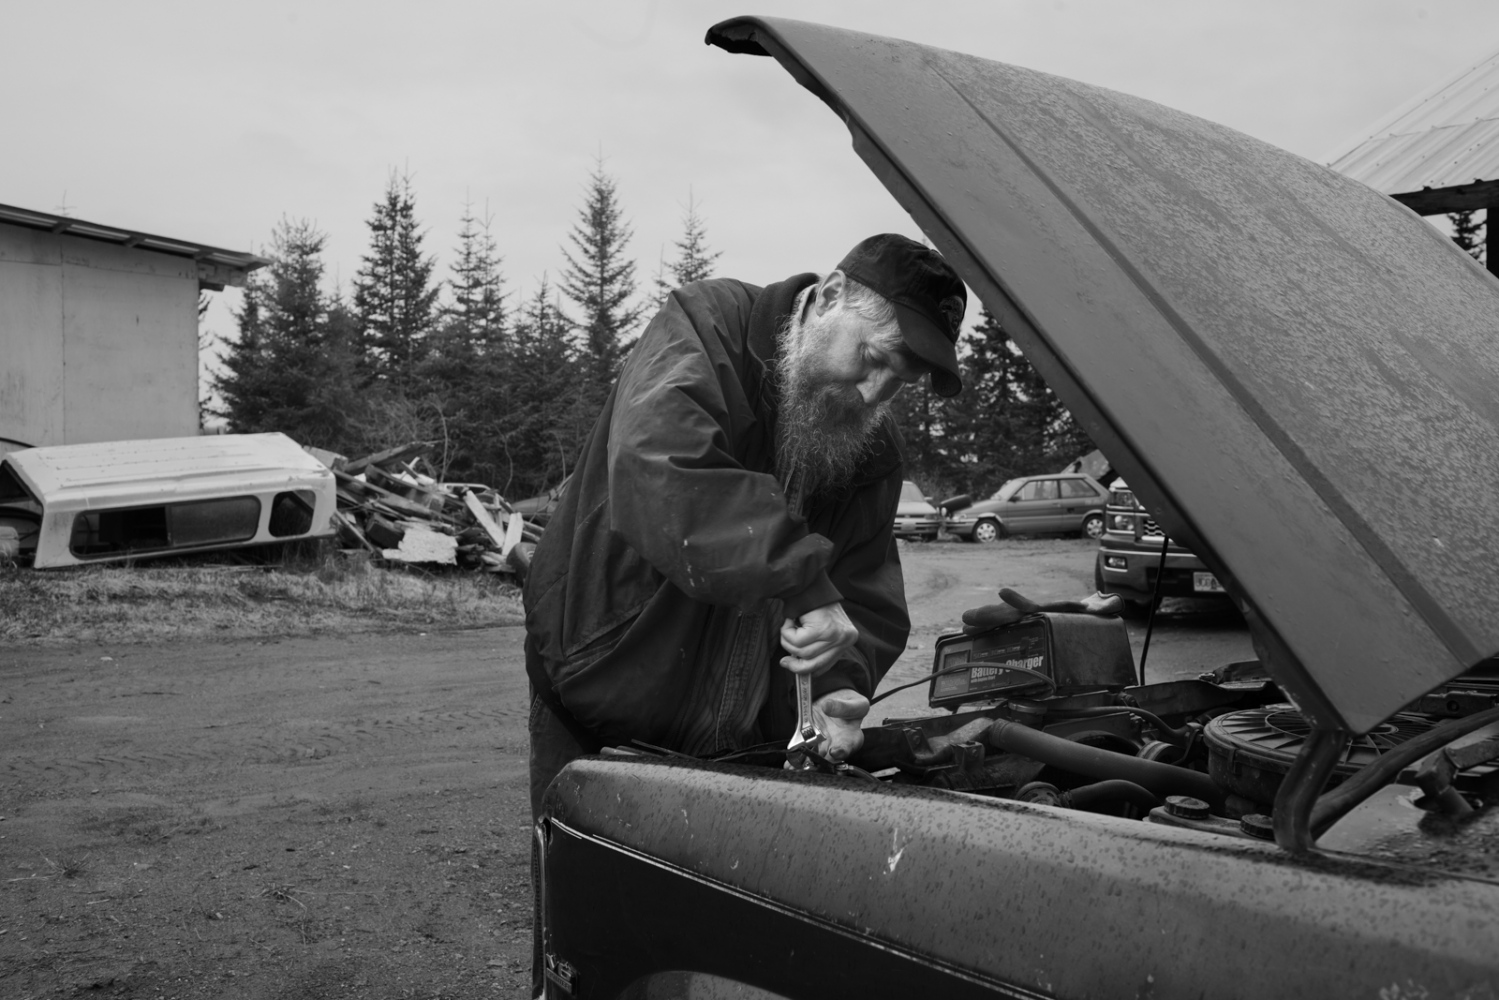 Dennis Fefelov, son of Father Kondraty Fefelov, arranging his engine's car. He used to be a fishermen and was always fetching his motors. Today his industry labour has been relegated to a second level due to an elevating  arthritis and reuma illnes. Dennis is 52 years old.